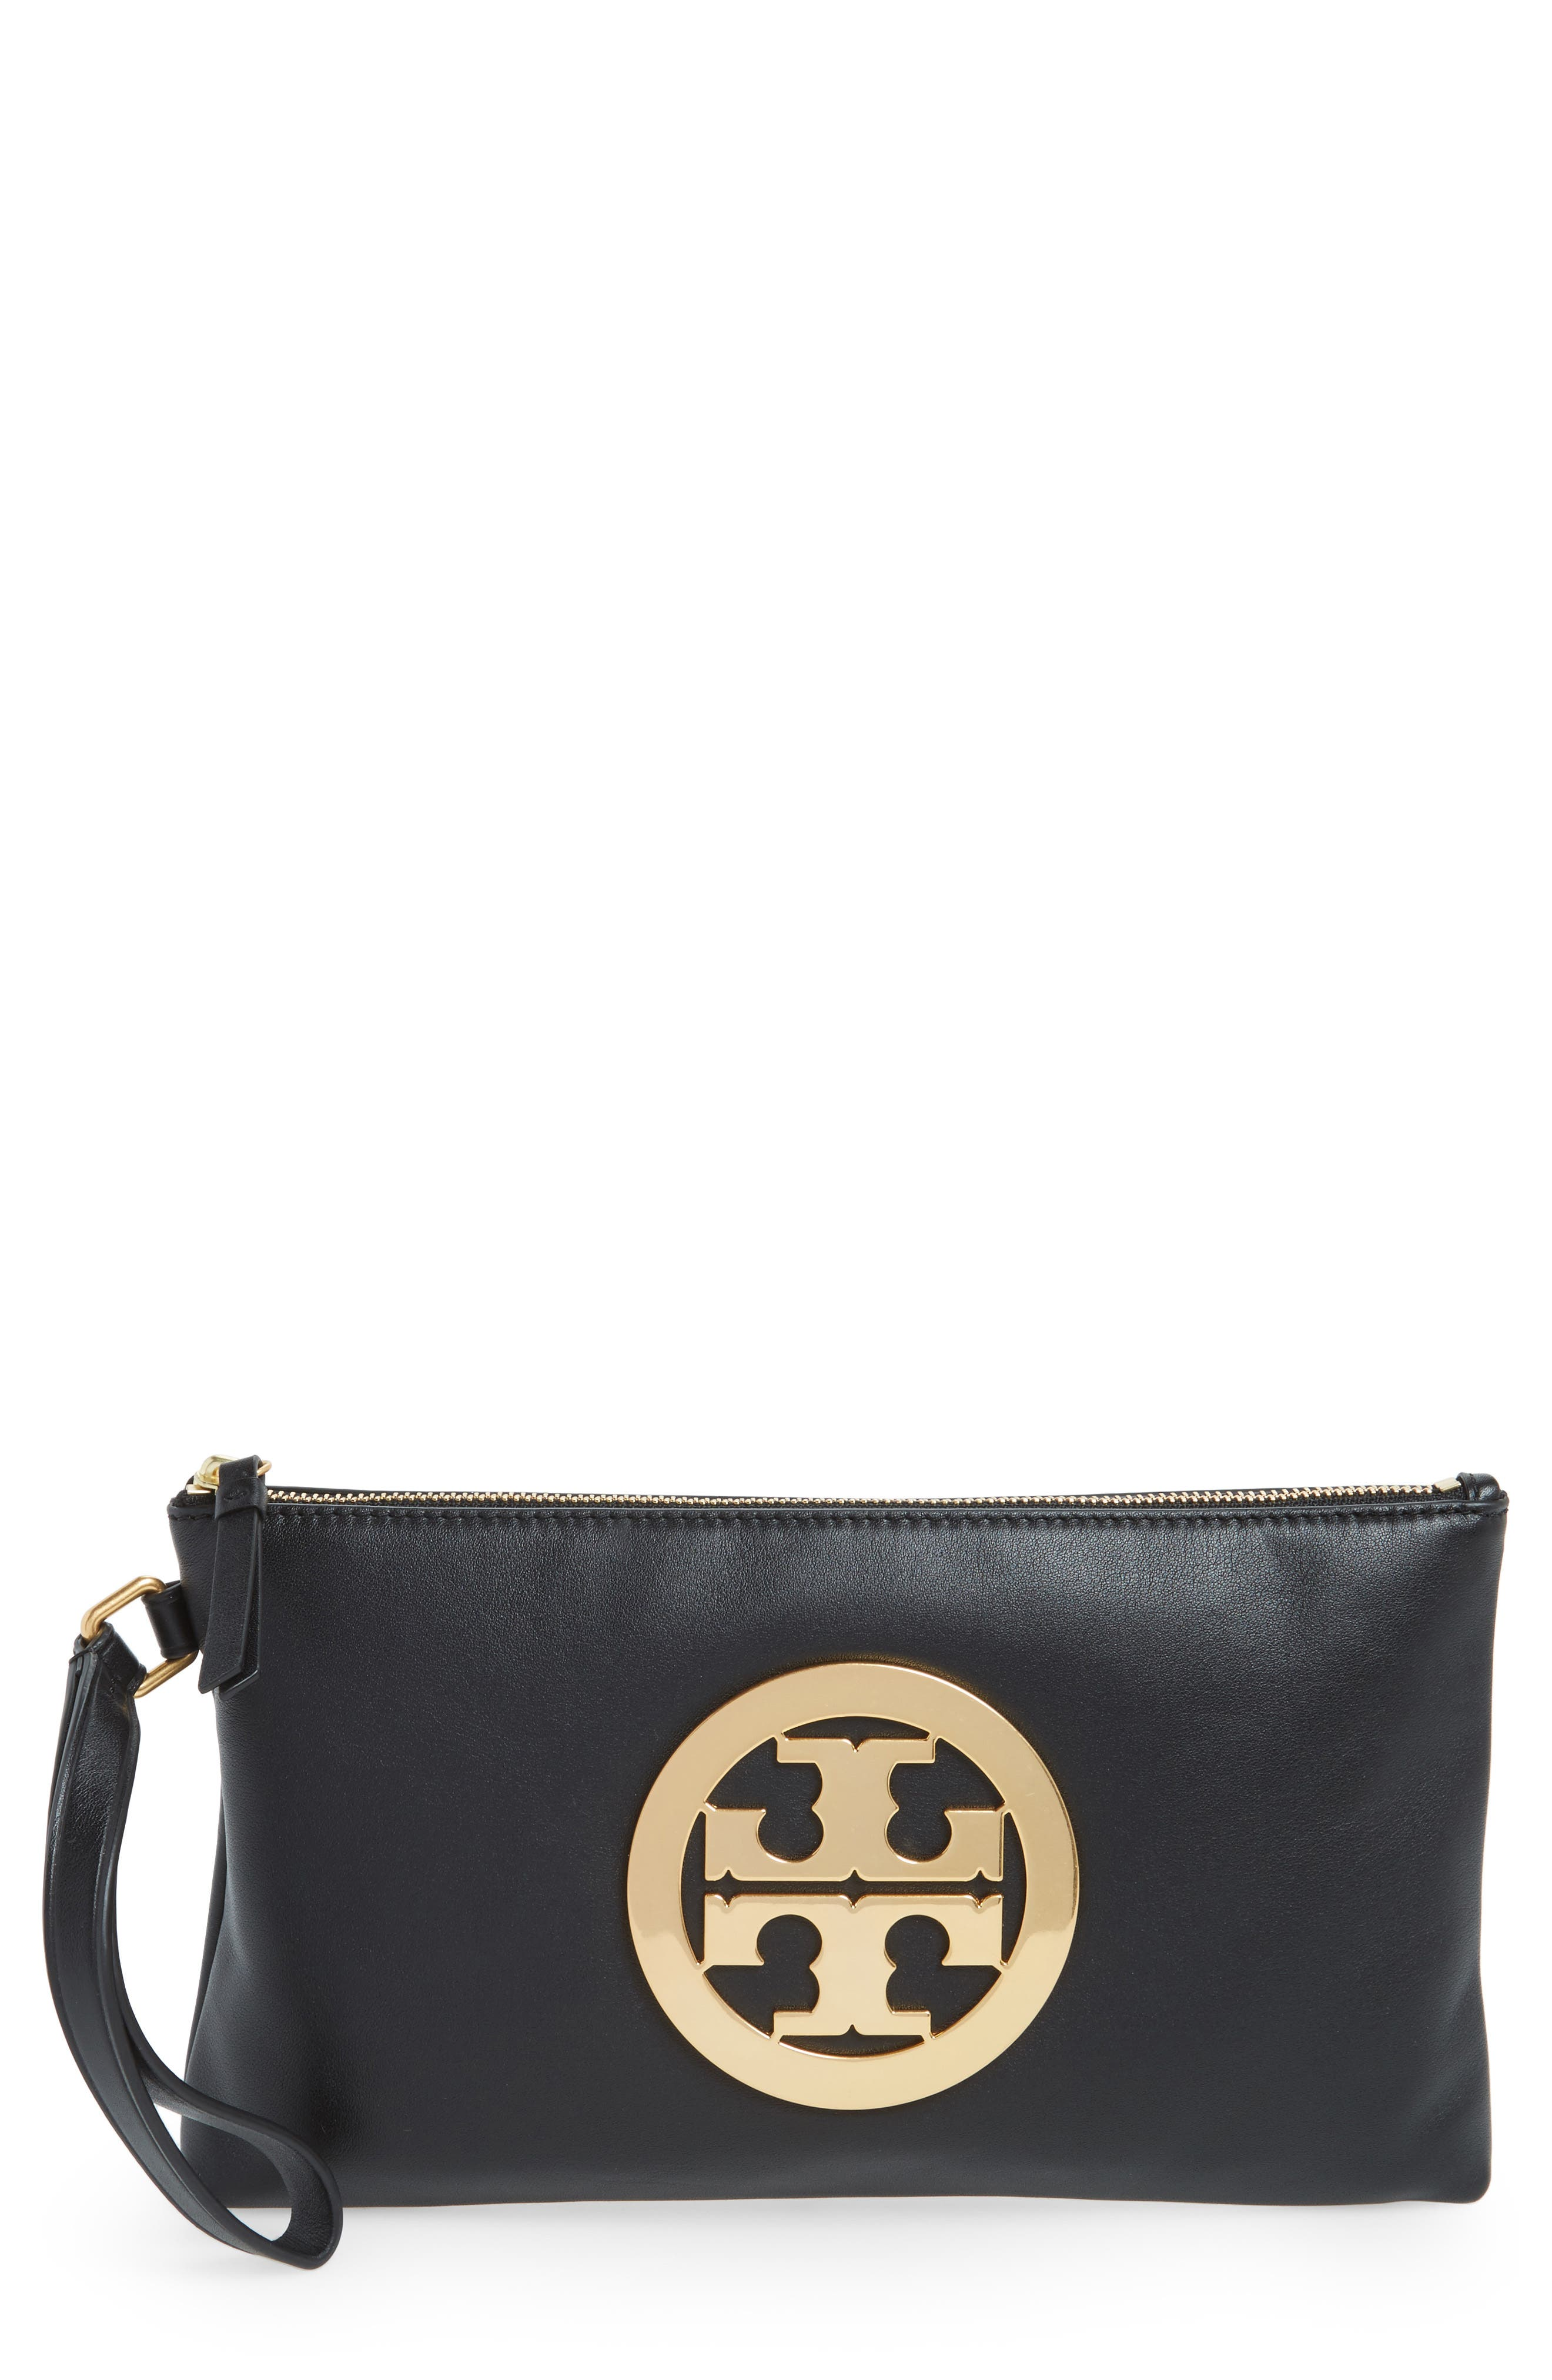 Alternate Image 1 Selected - Tory Burch Charlie Suede Wristlet Clutch